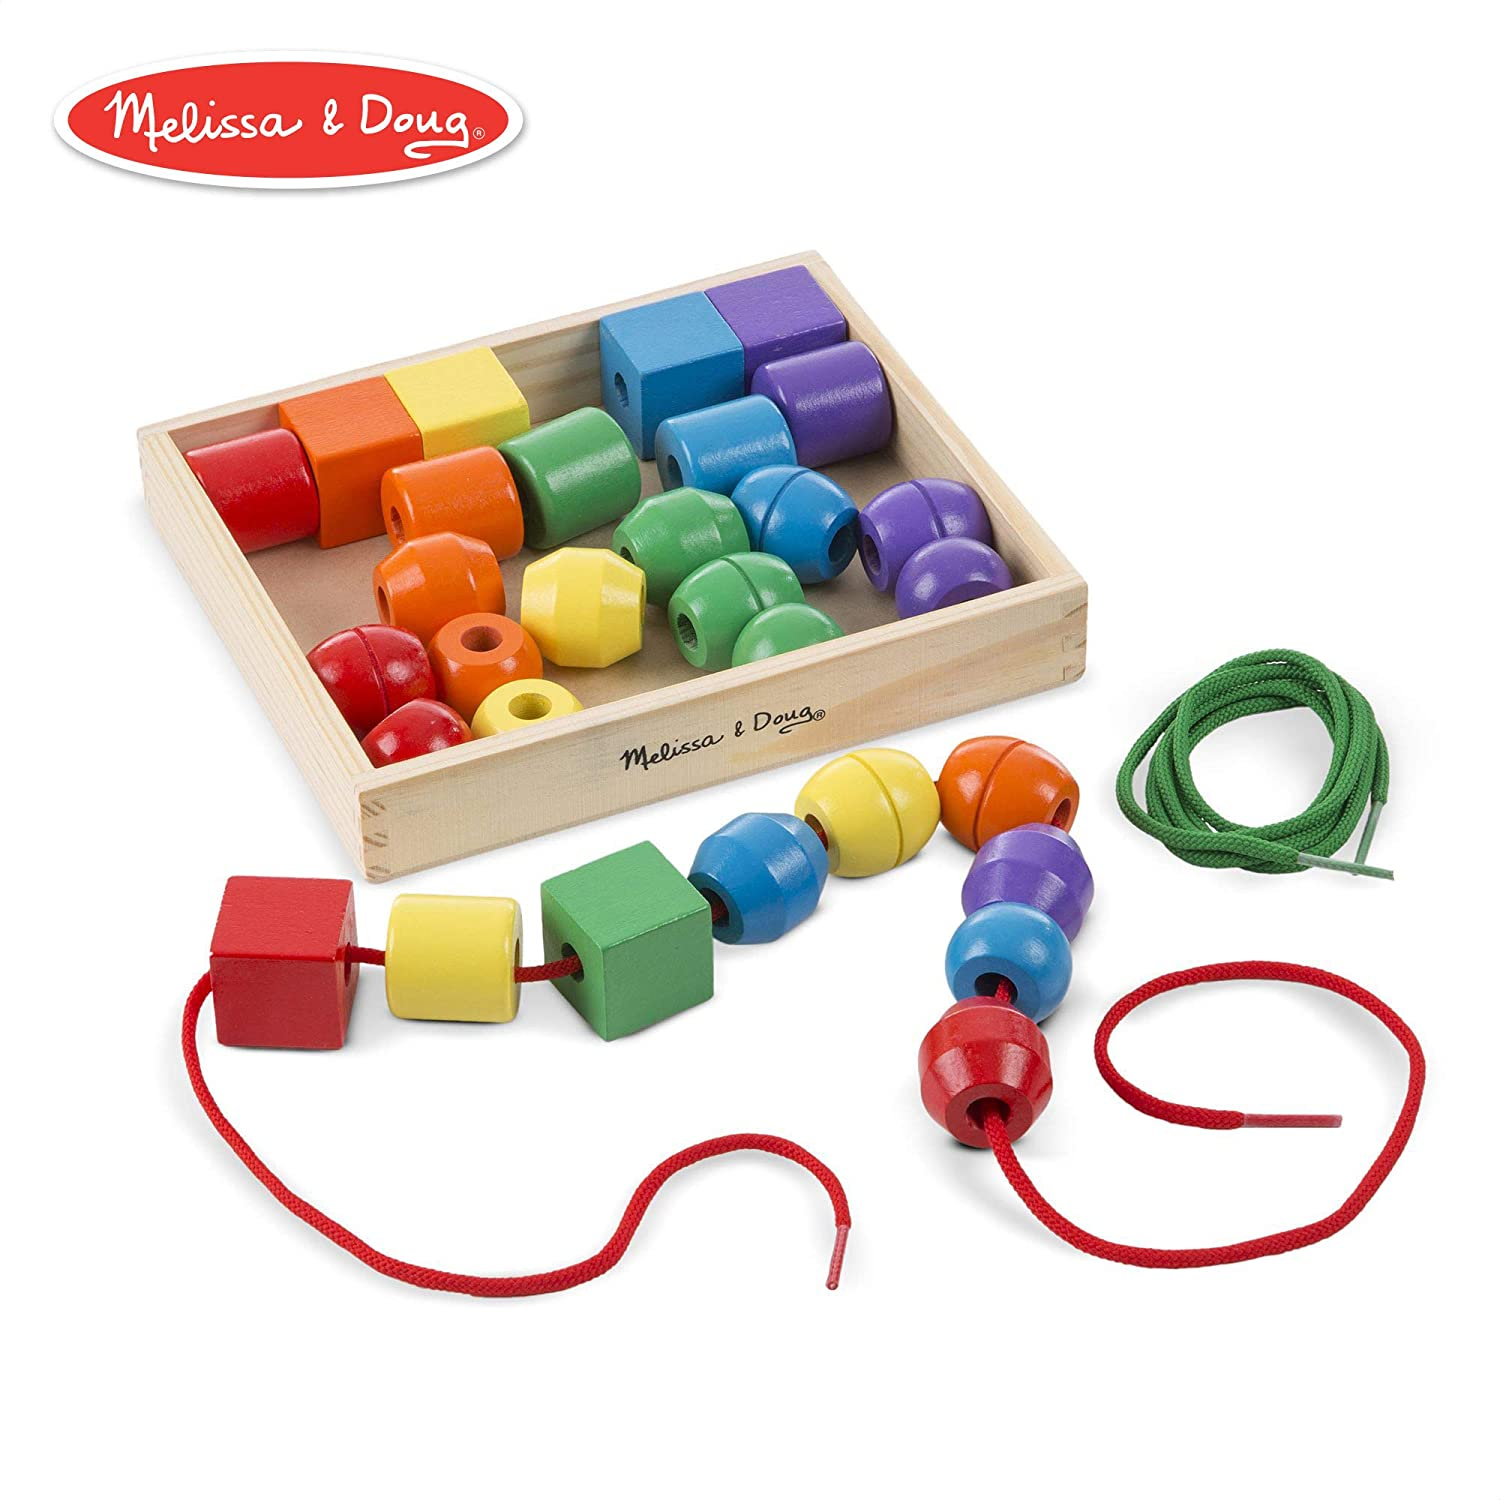 Melissa /& Doug 544 Primary Lacing Beads Educational Toy With 30 Wooden Beads and 2 Laces